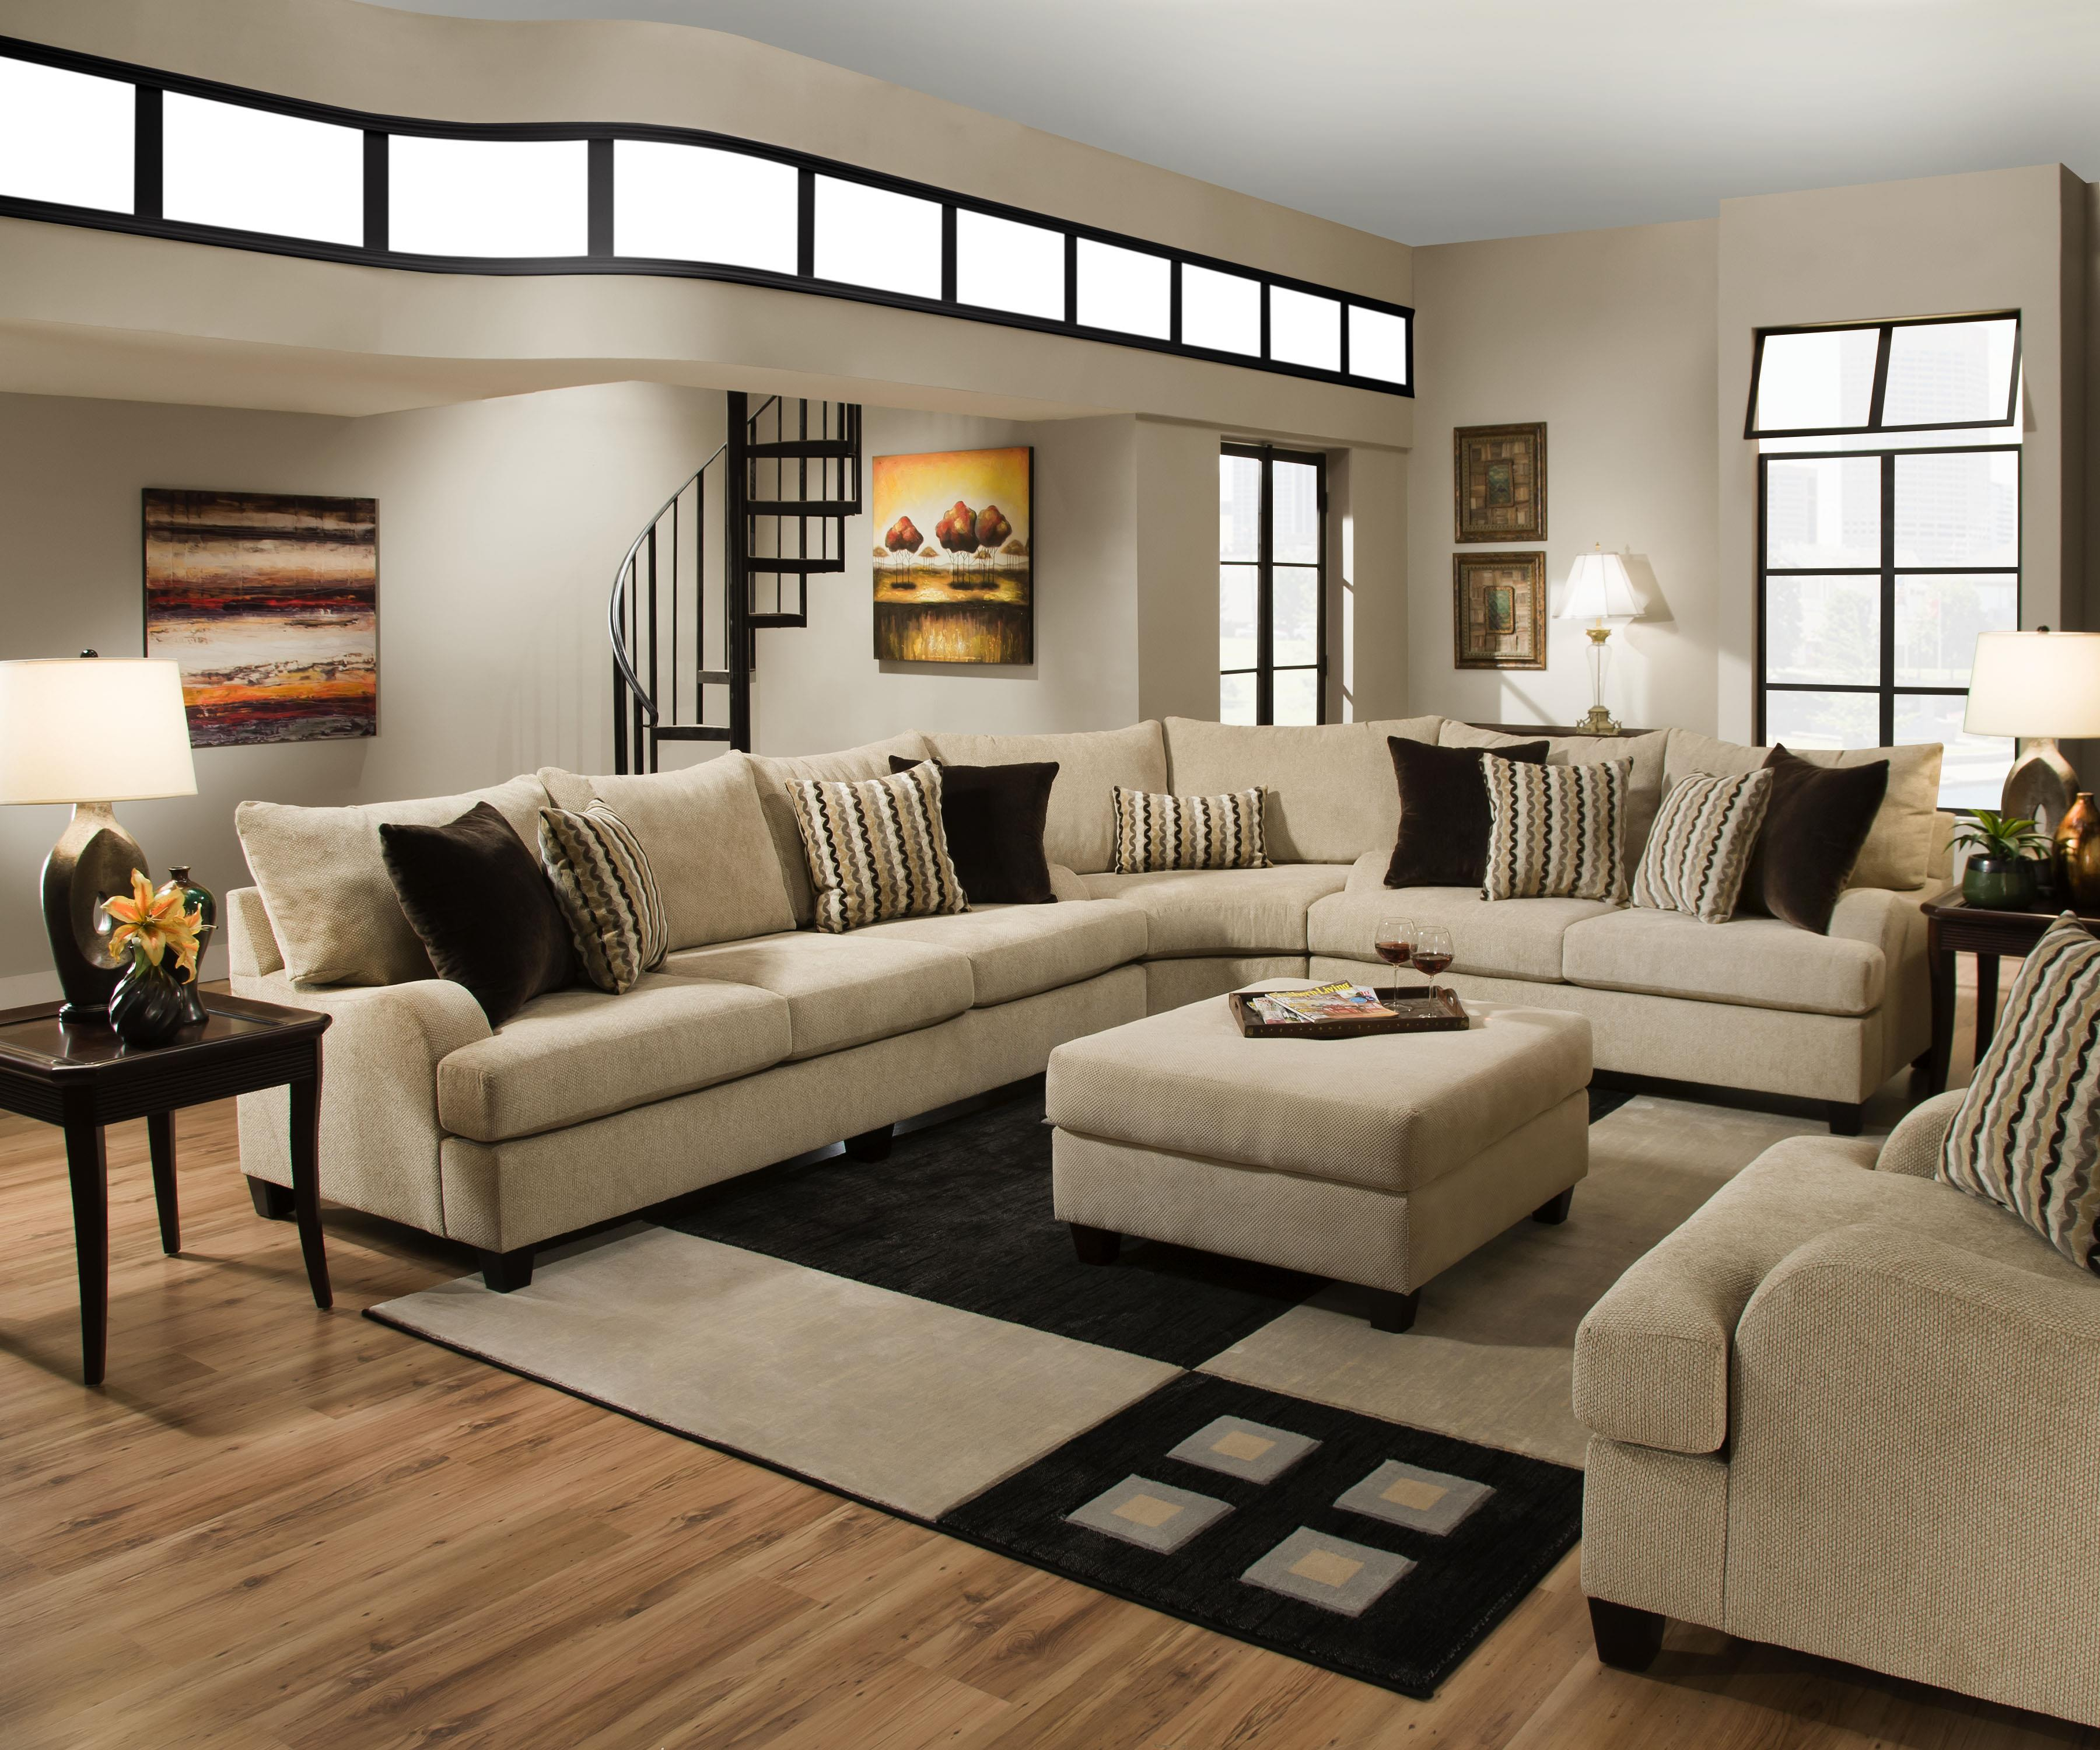 Simmons Upholstery 8520 Sectional Sofa - Item Number: 8520Sectional-TrindadTaupe